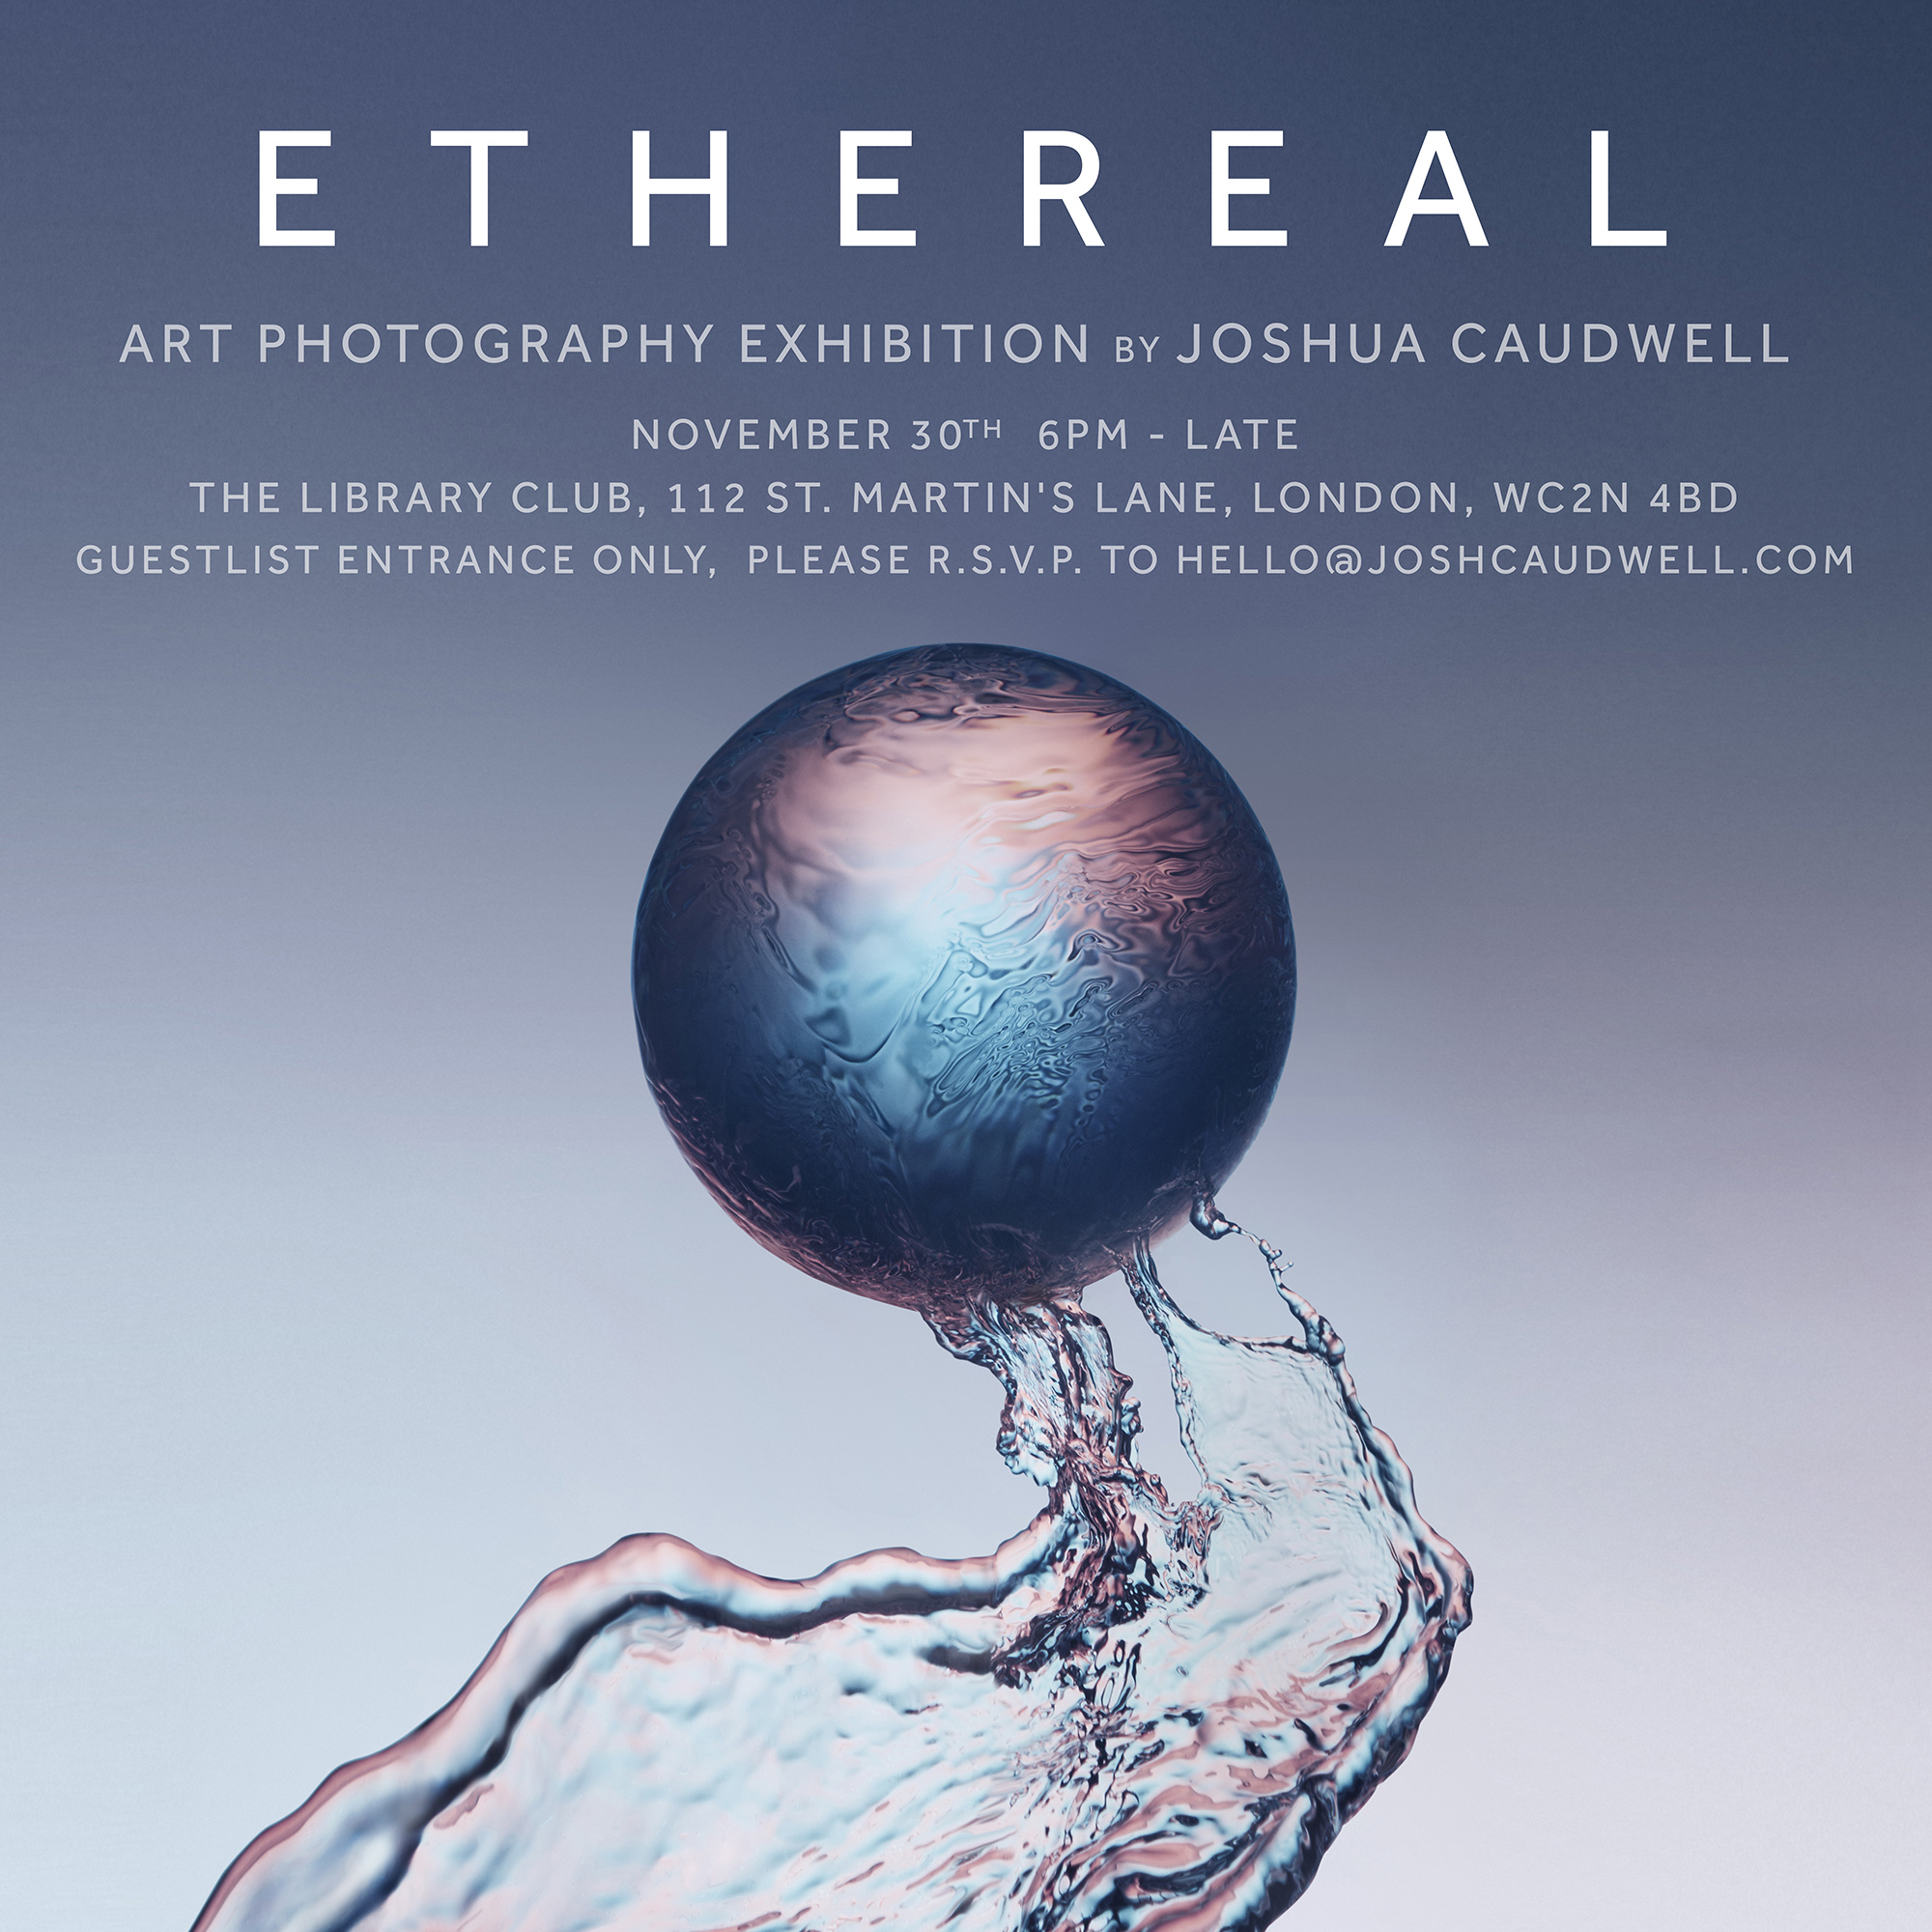 photo-exhibition-invite-ethereal.jpg